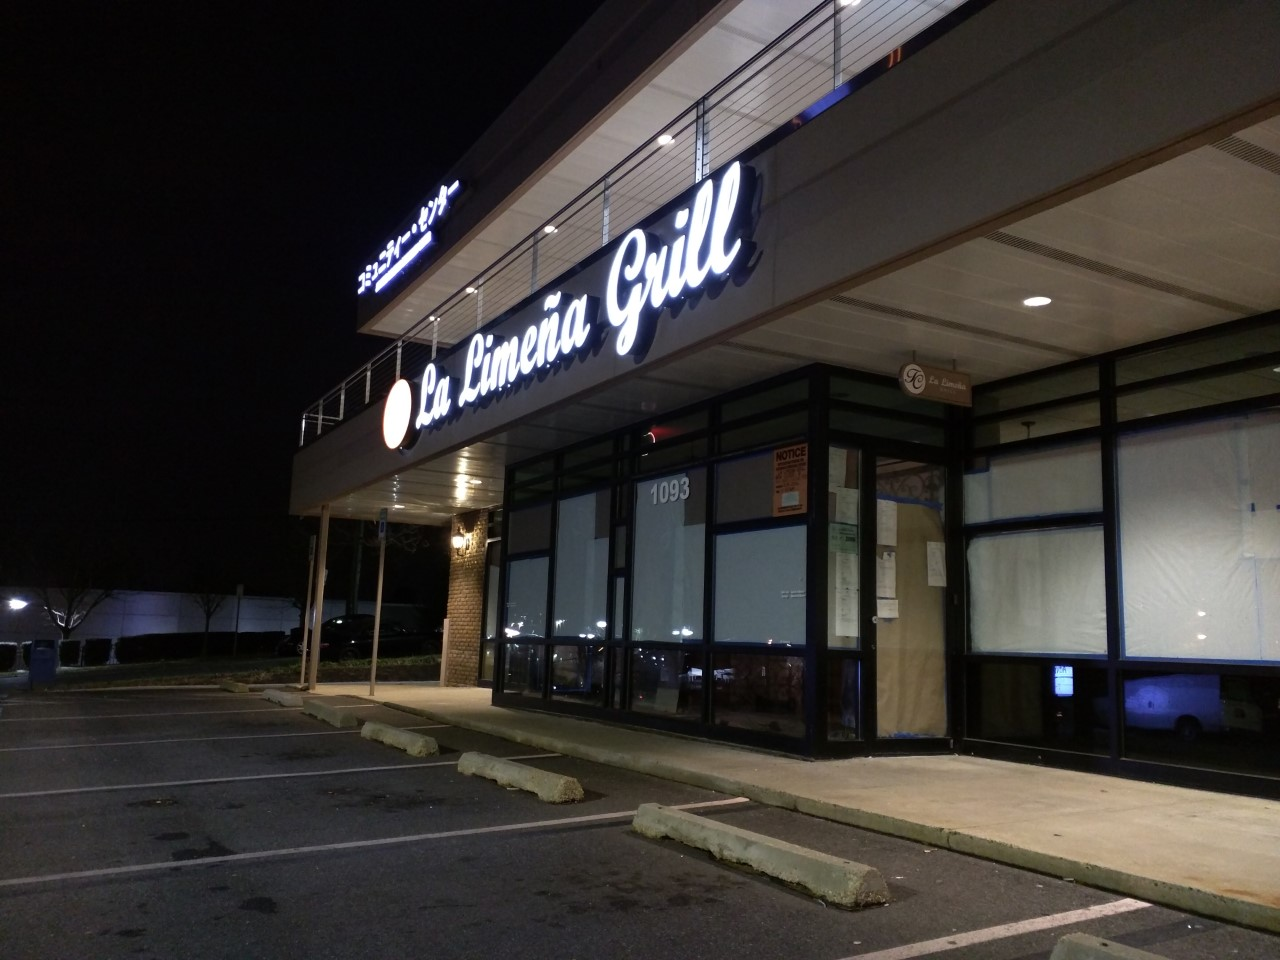 Notoriously Montgomery County Averse Food Critic Tom Sietsema Once Wished The Por La Limeña Restaurant At 765 Rockville Pike Could Be Closer To